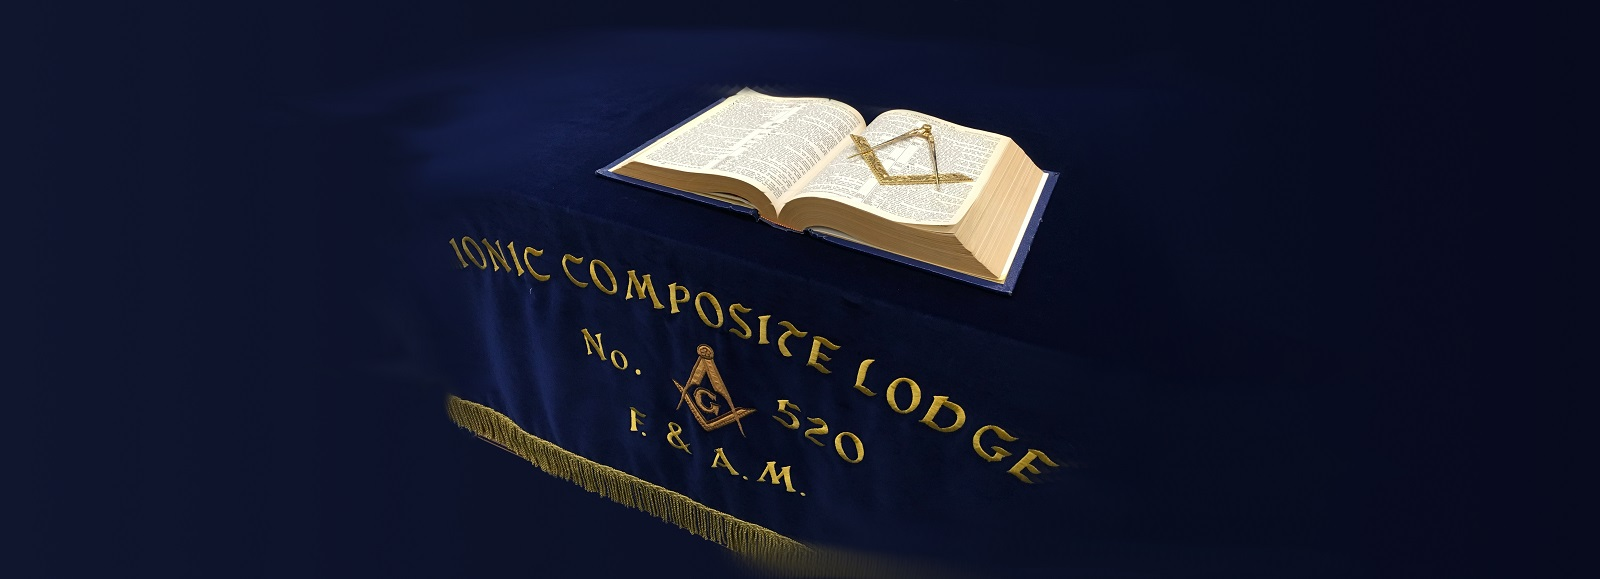 Ionic composite masonic lodge 520 free and accepted masons of upcoming events pronofoot35fo Images